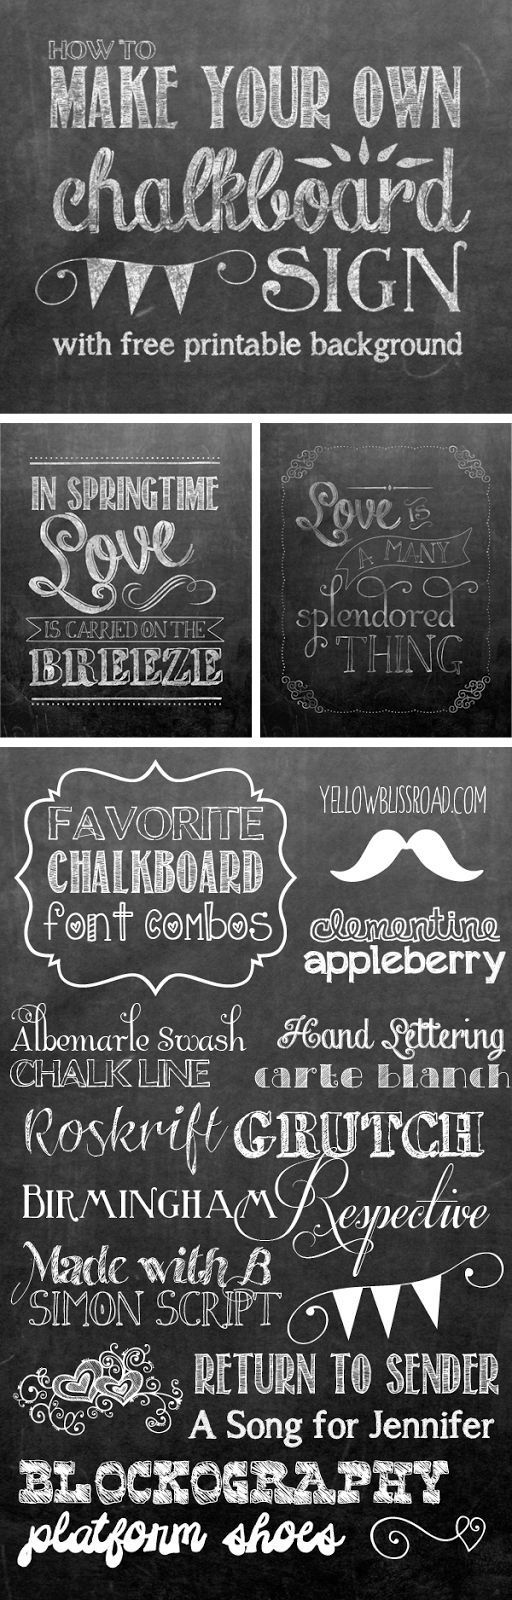 Tips for Making Your Own Chalkboard Sign, Chalkboard Font Combos, and a Free…